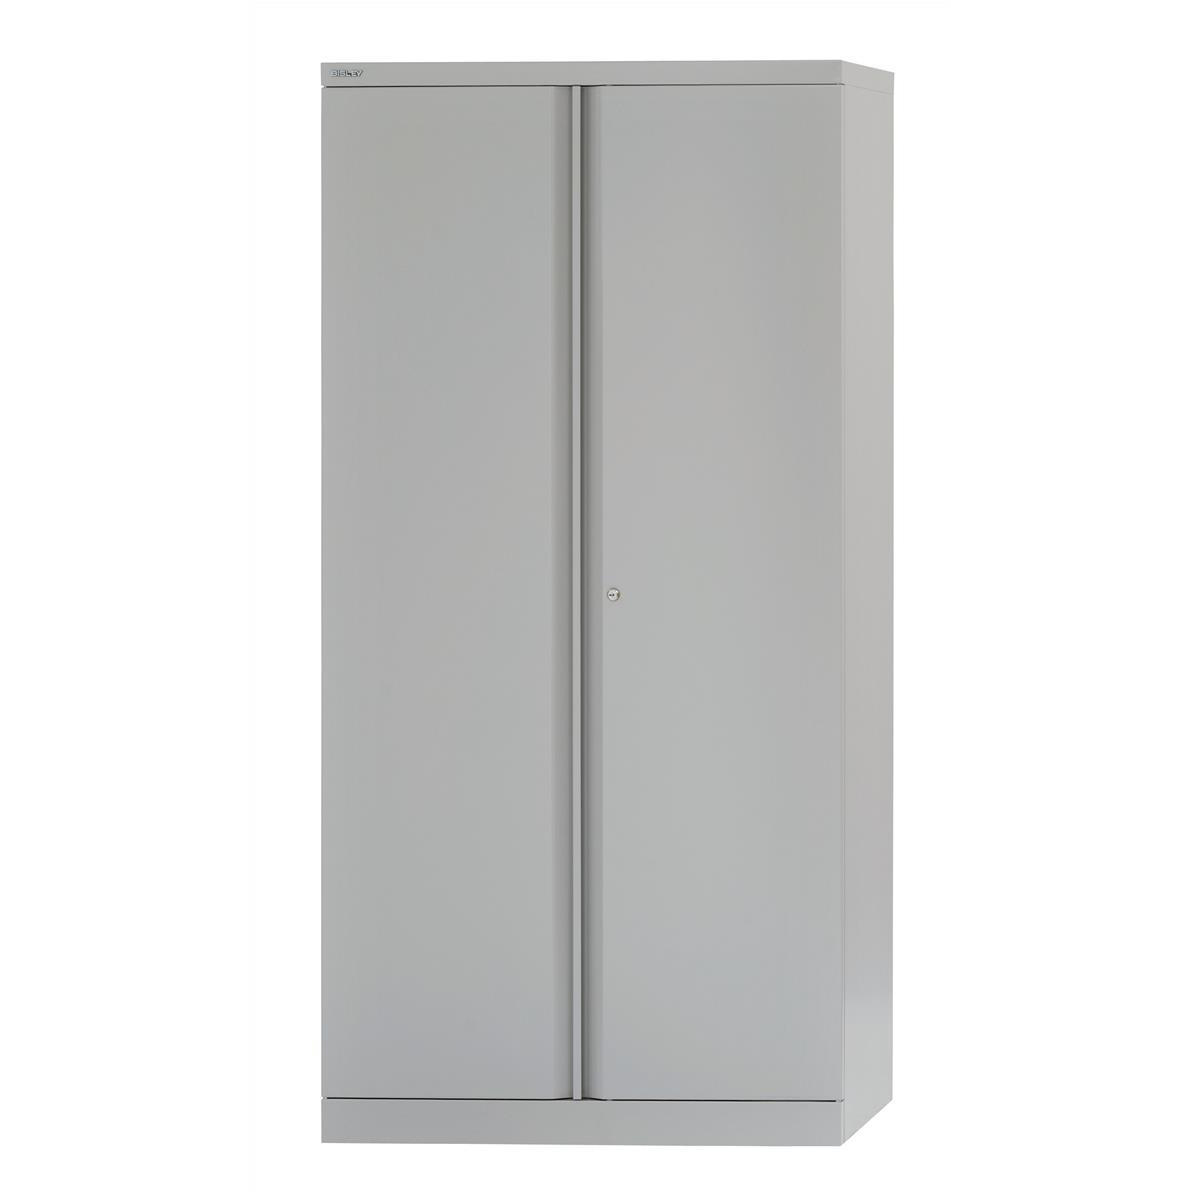 Bisley Two Door Steel Storage Cupboard 914x470x1970-1985mm with 4 Shelves Grey Ref YECB0919/4S